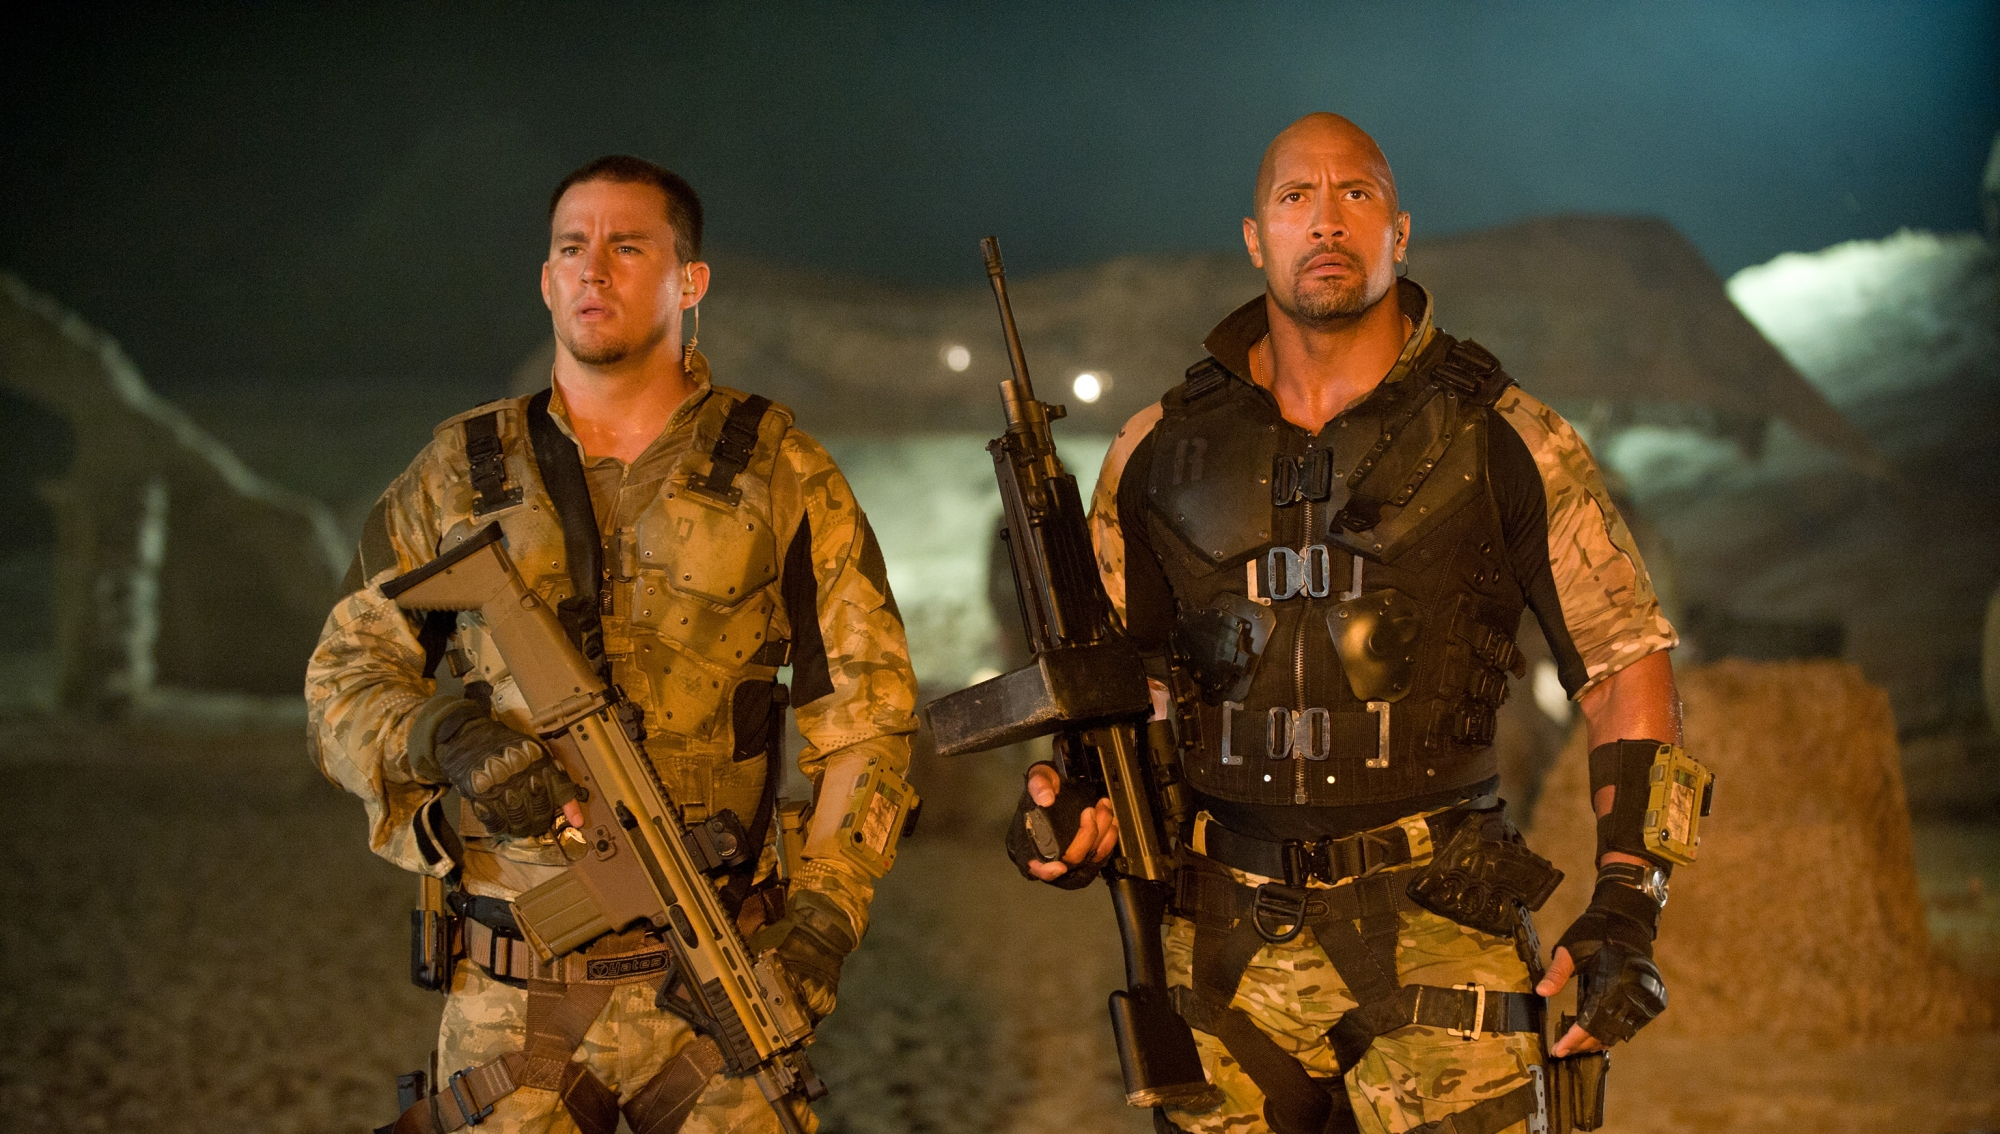 G.I. JOE: RETALIATION This Summer with Bruce Willis and Dwayne Johnson (Rock)